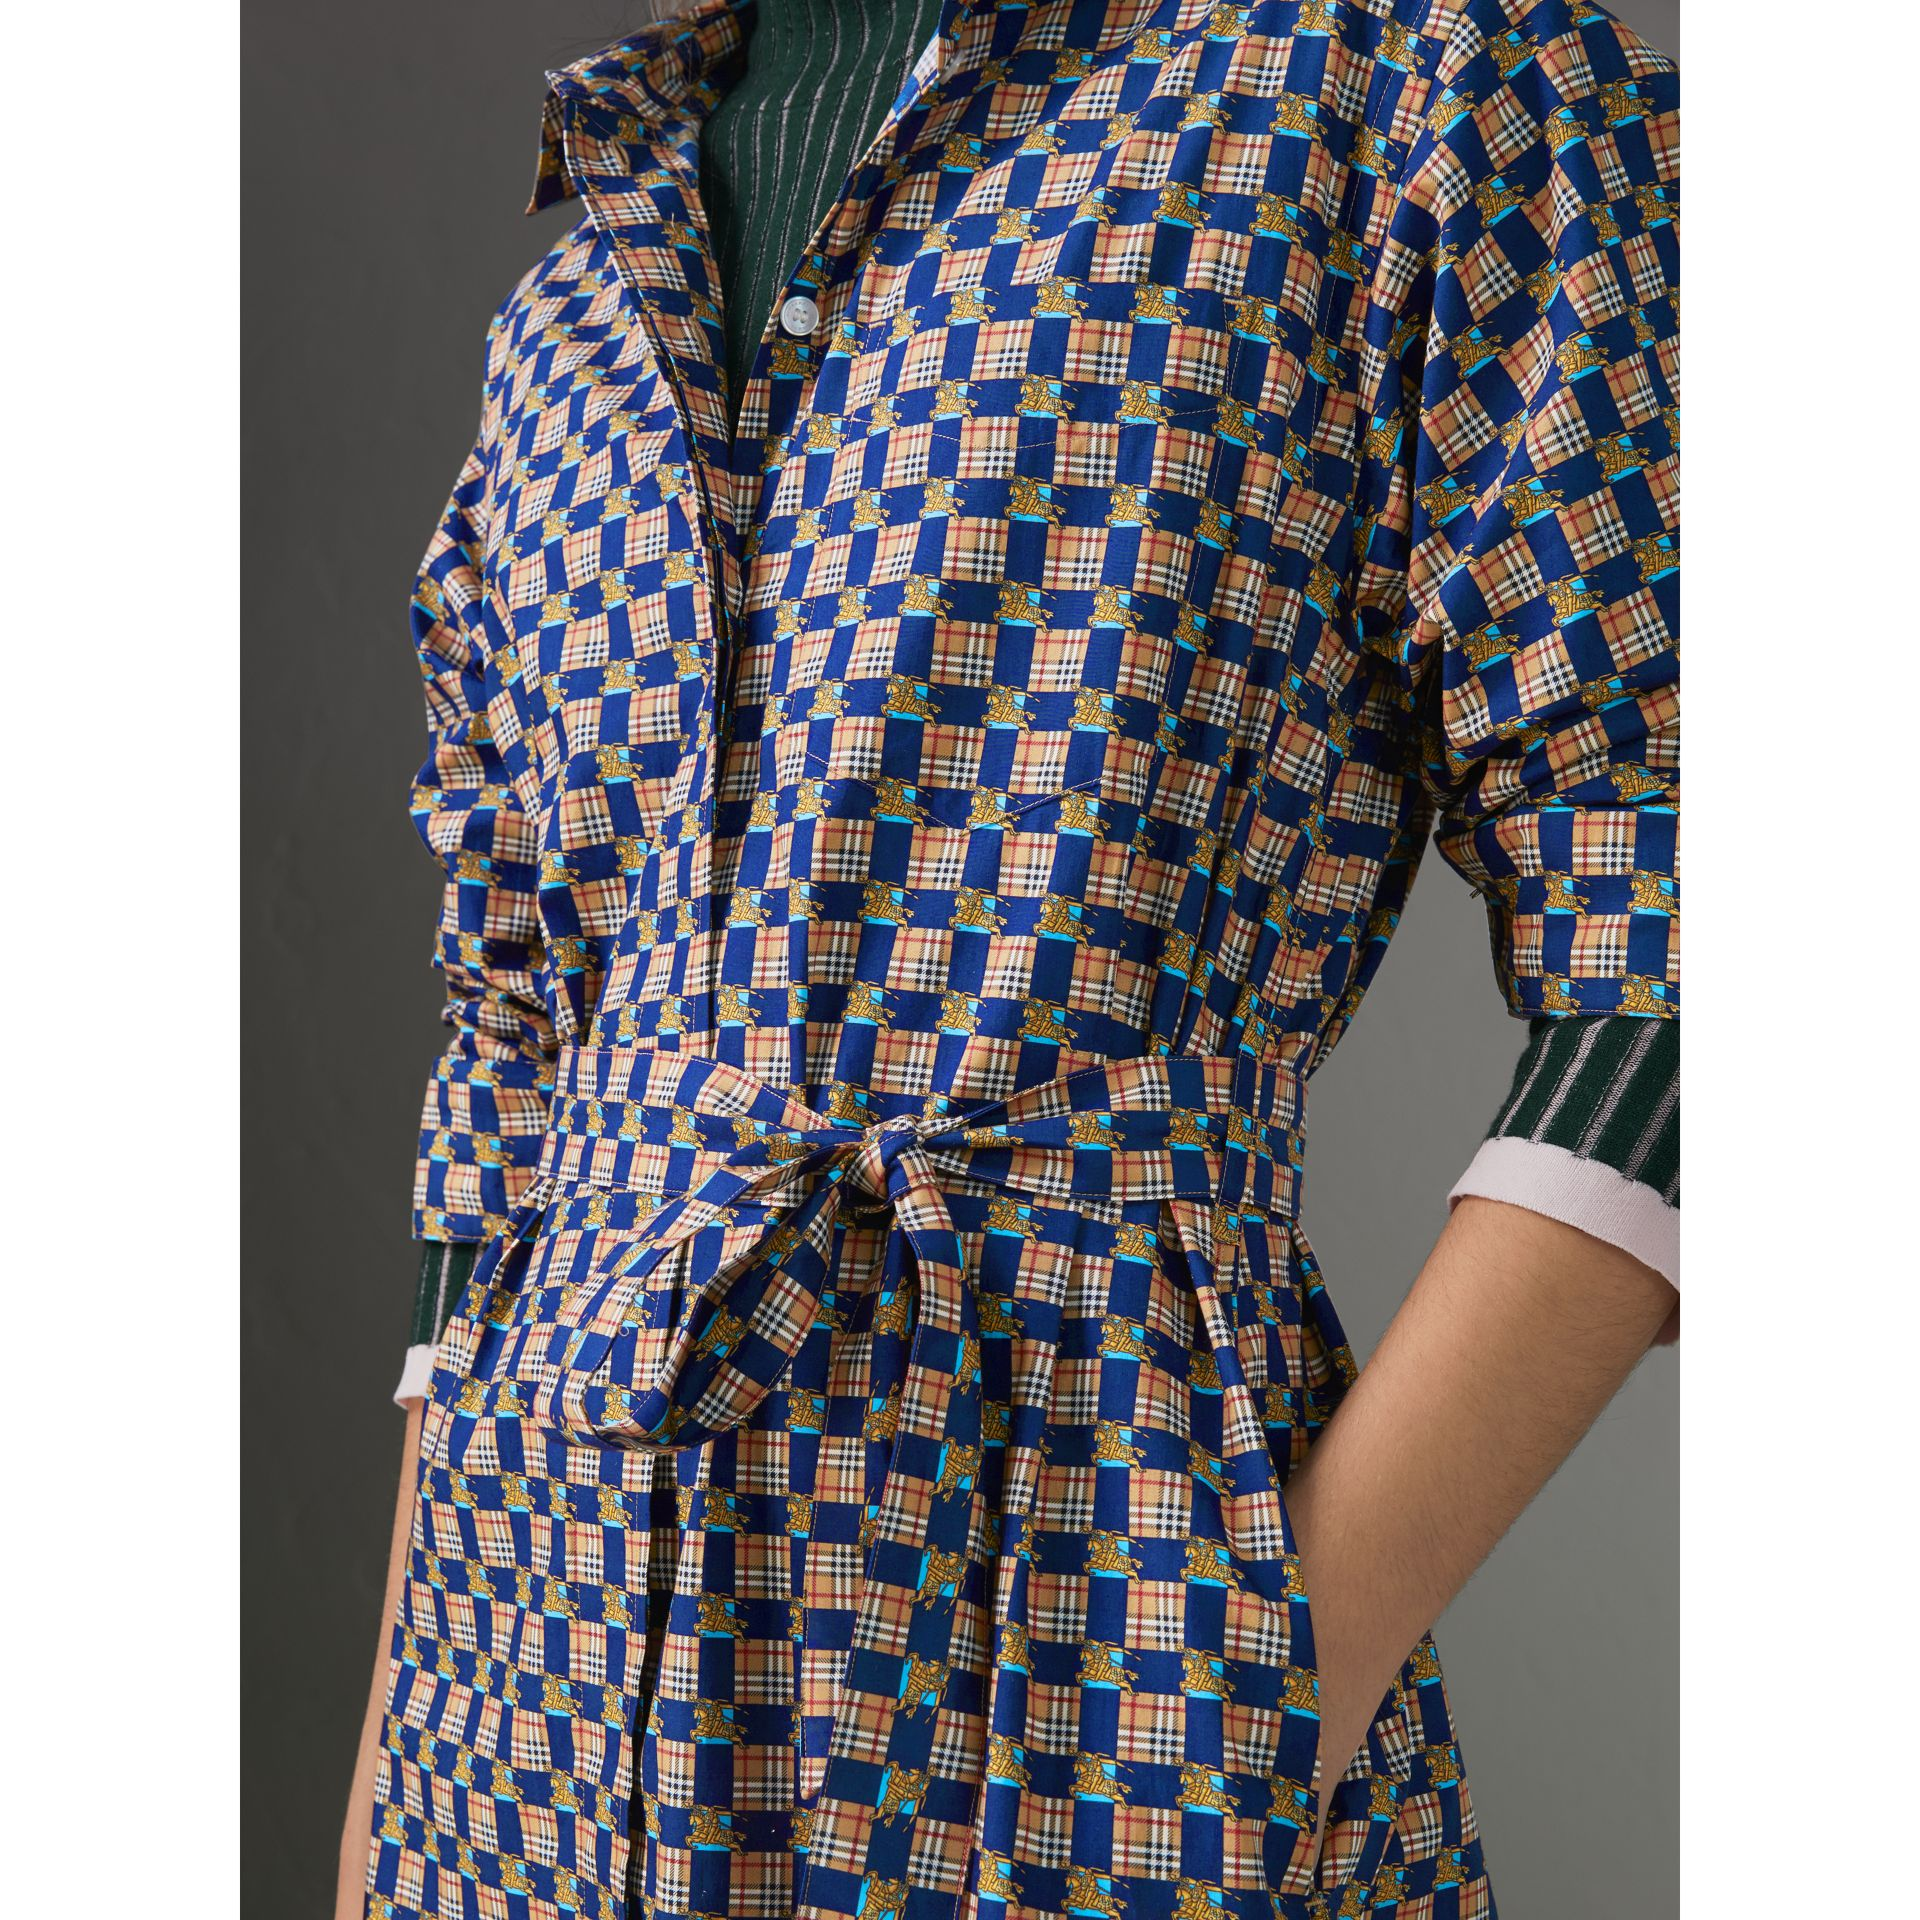 Tiled Archive Print Cotton Shirt Dress in Navy - Women | Burberry United States - gallery image 1